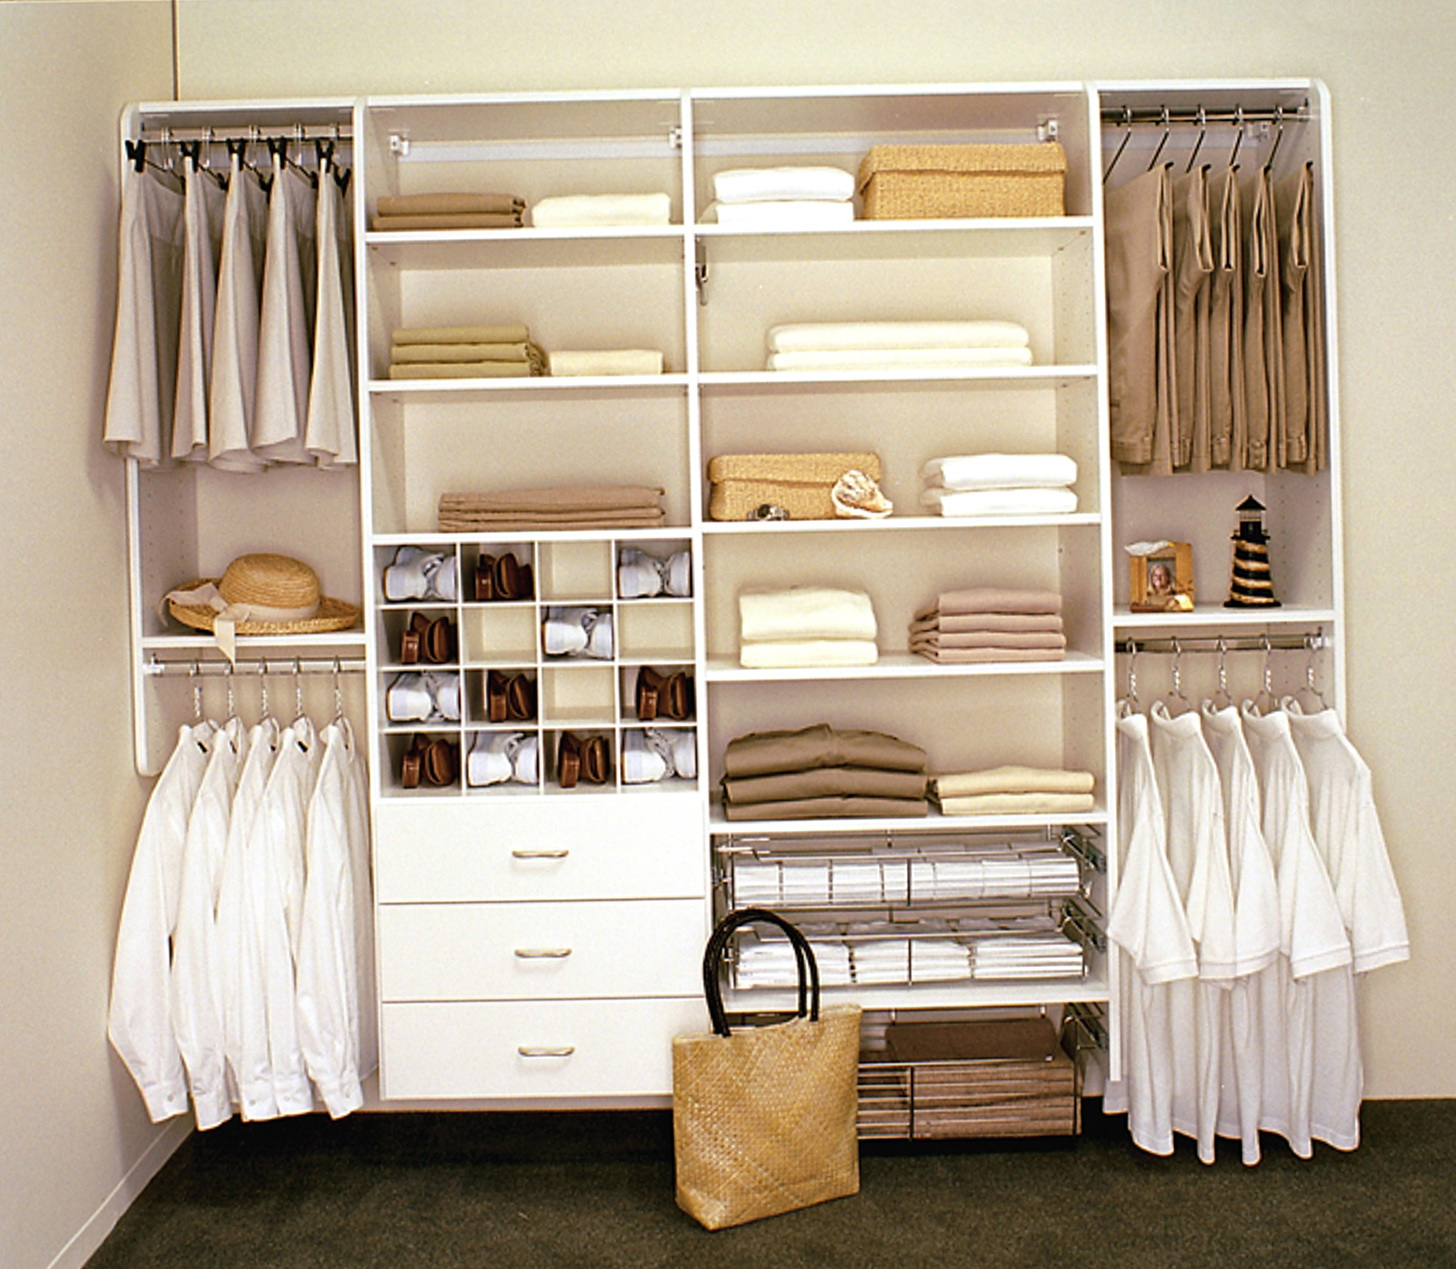 Walk in closet organizers ikea home design ideas for Bedroom closet organizers ikea